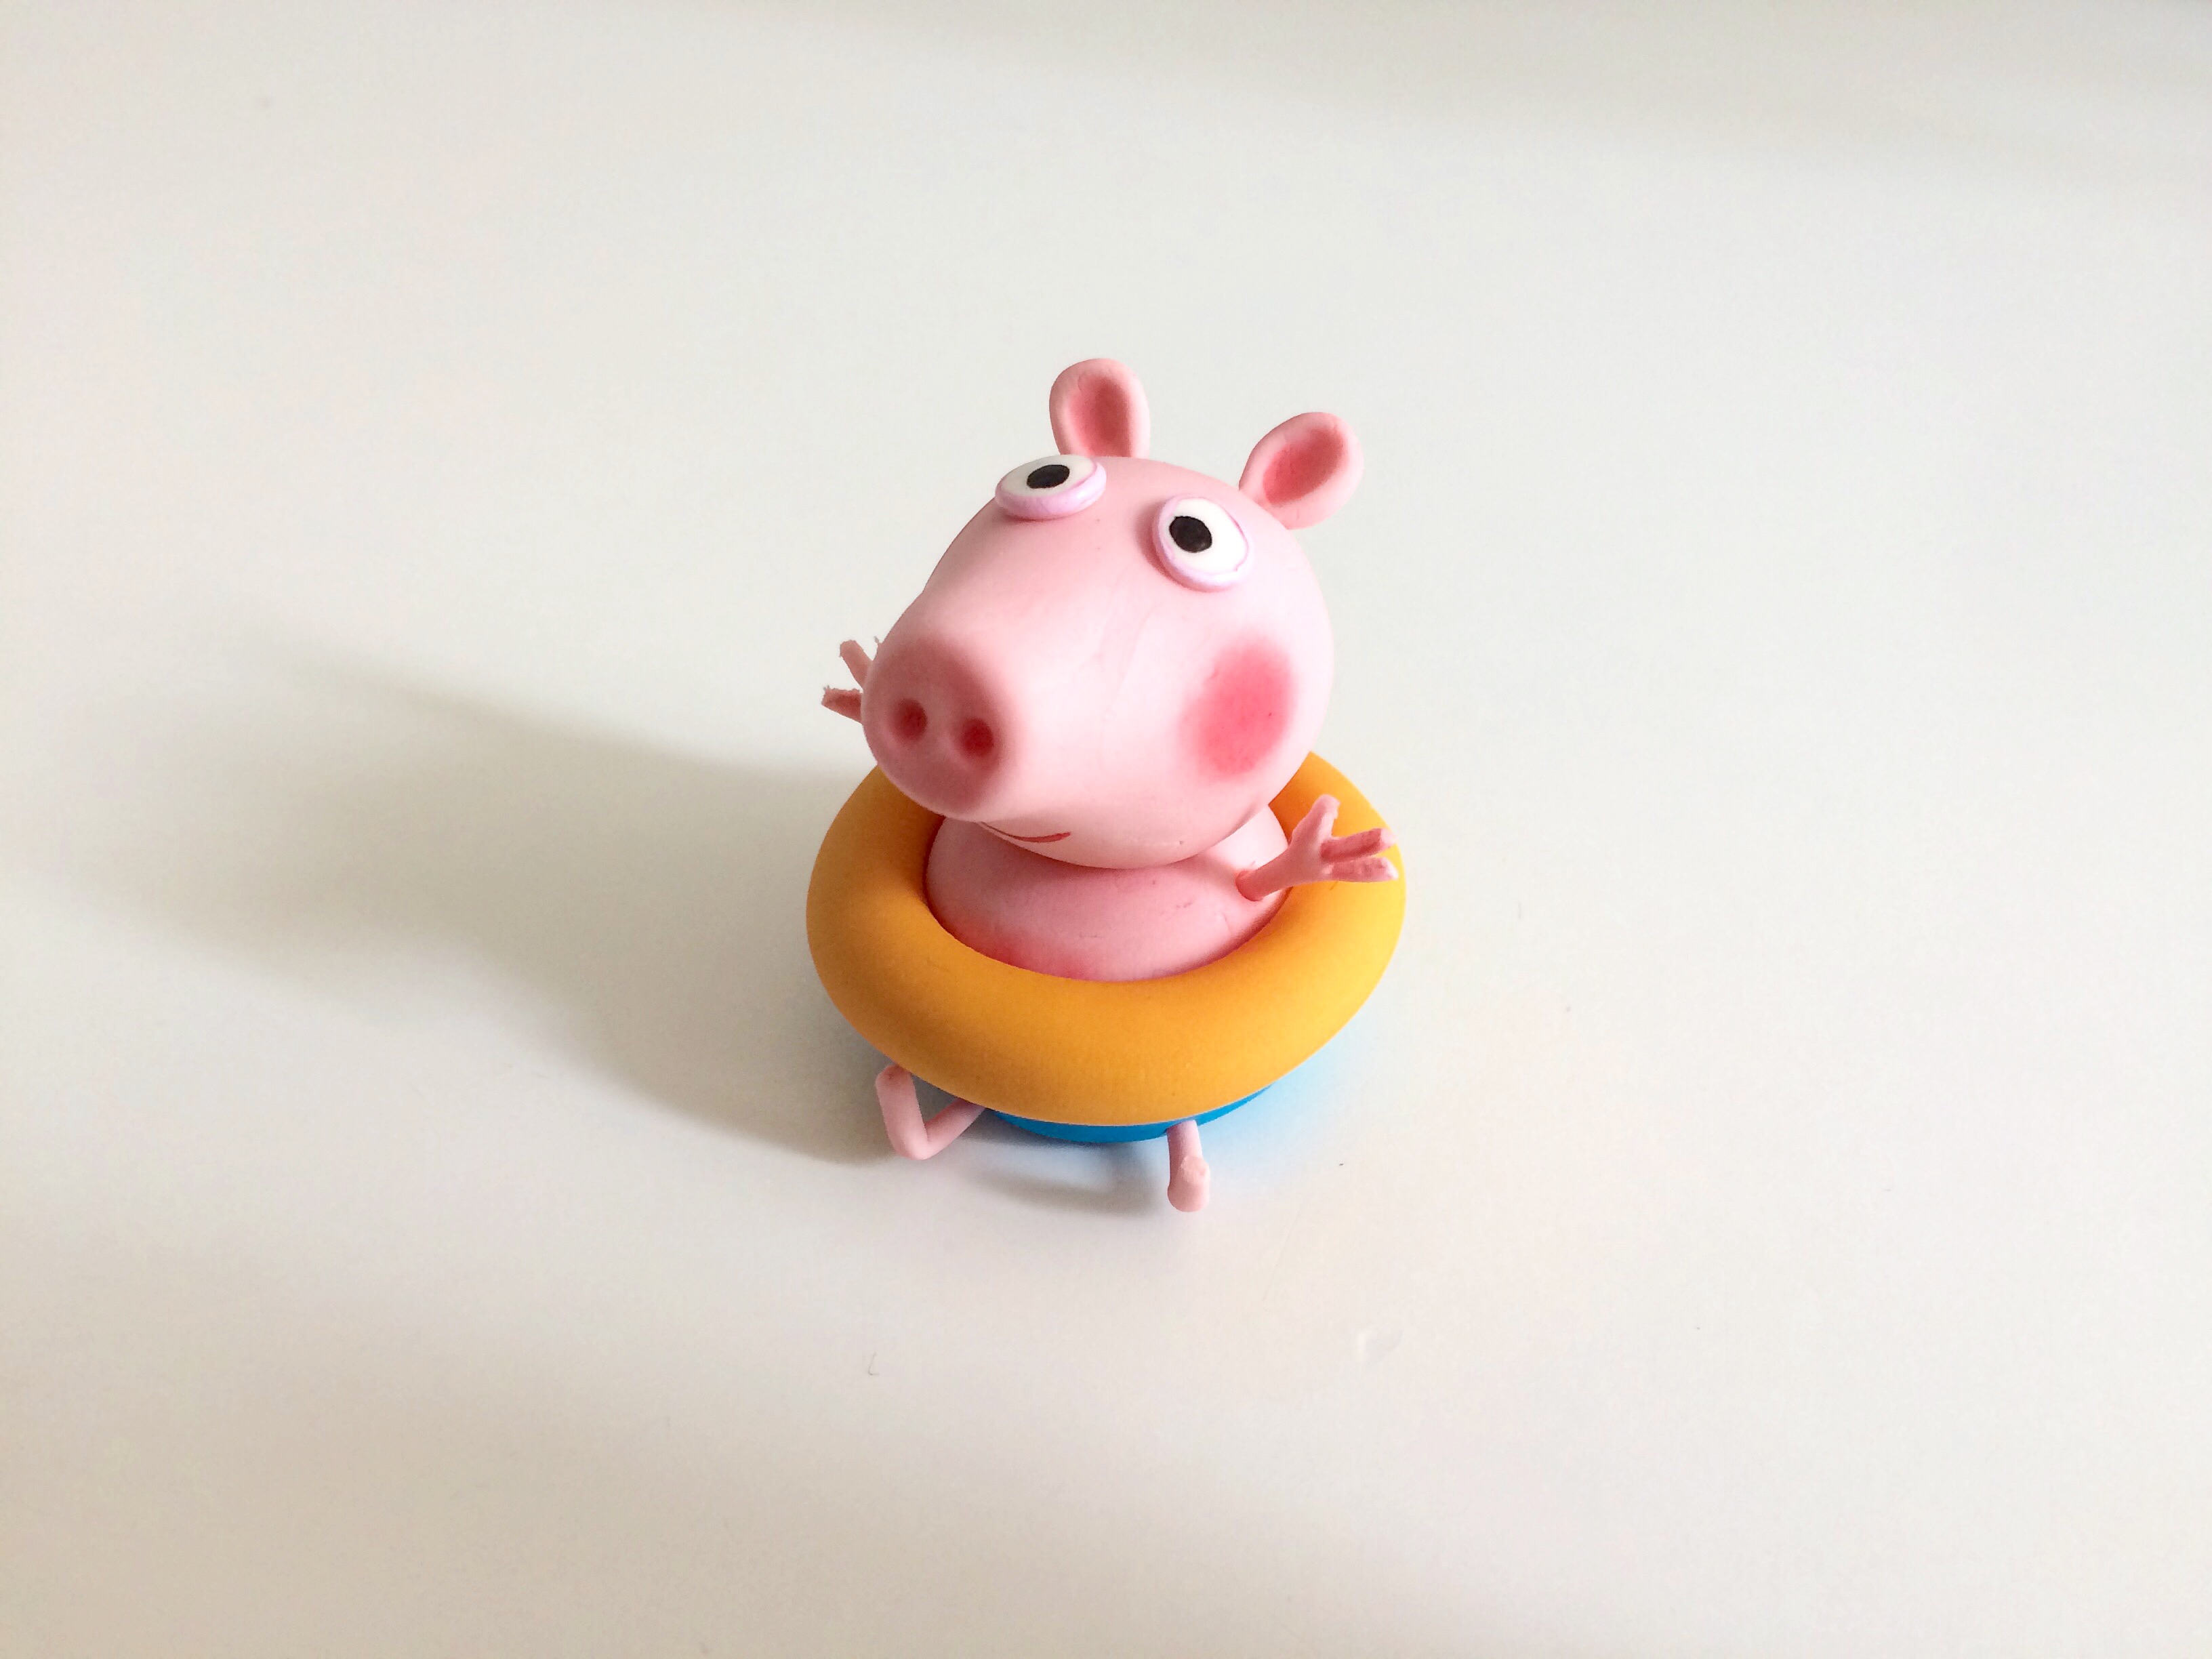 Fondant Peppa the pig figurine